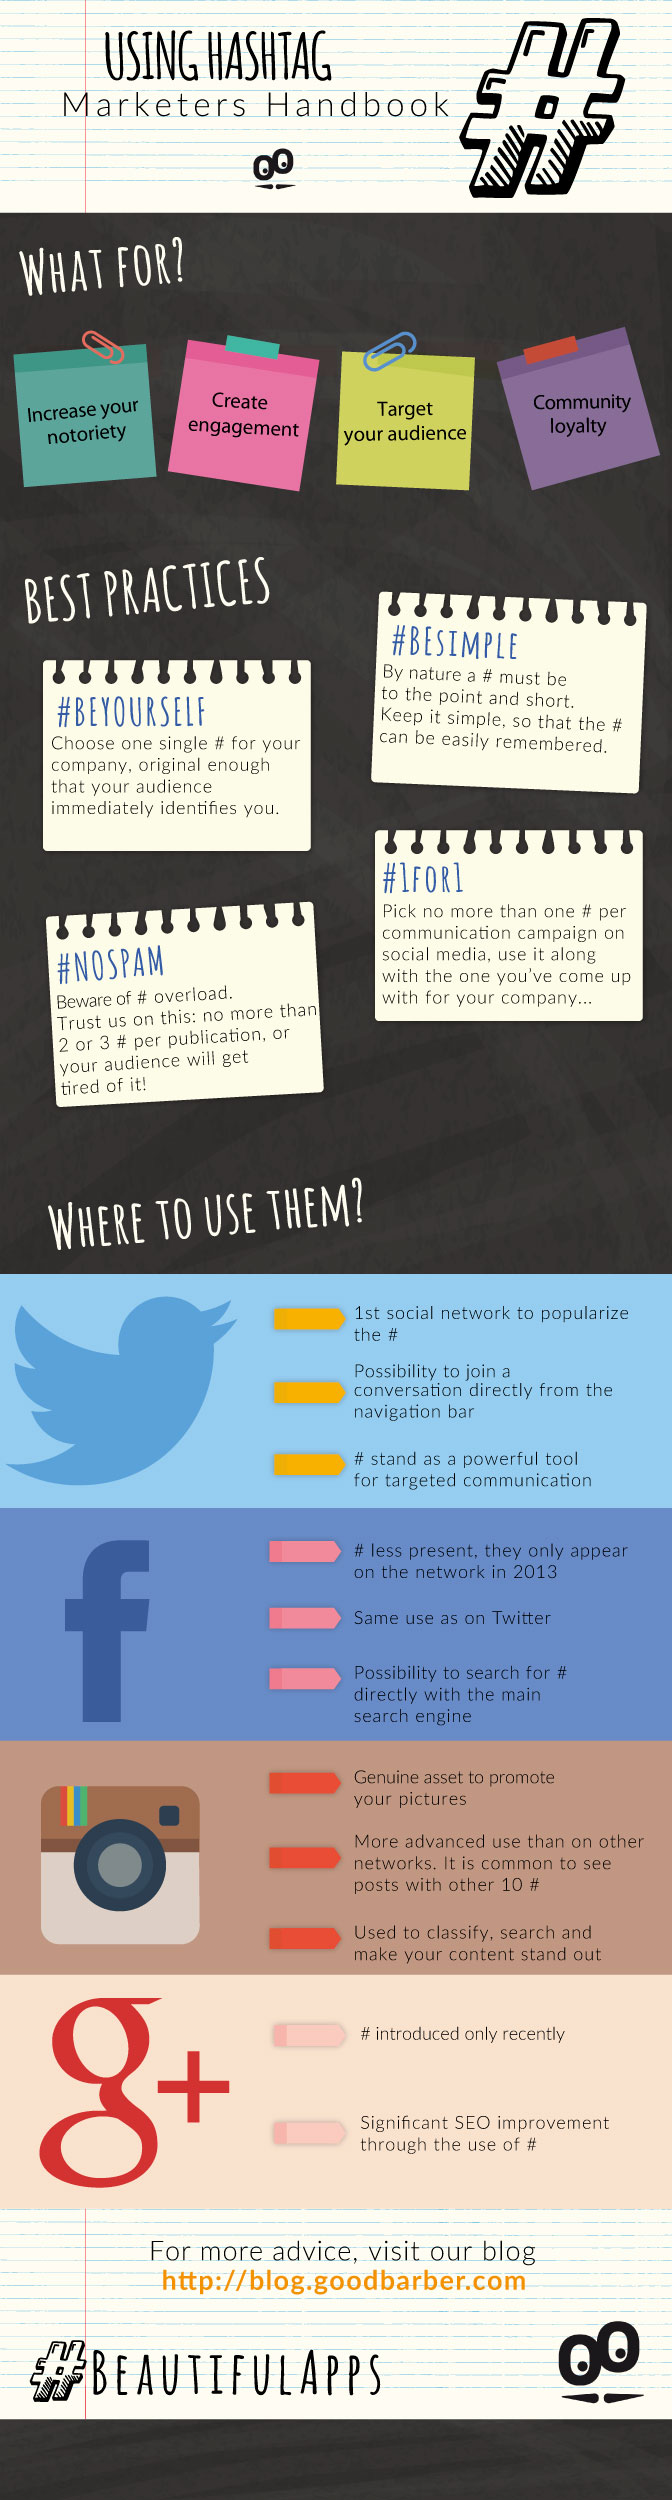 #Hashtag: How To Use Them Best